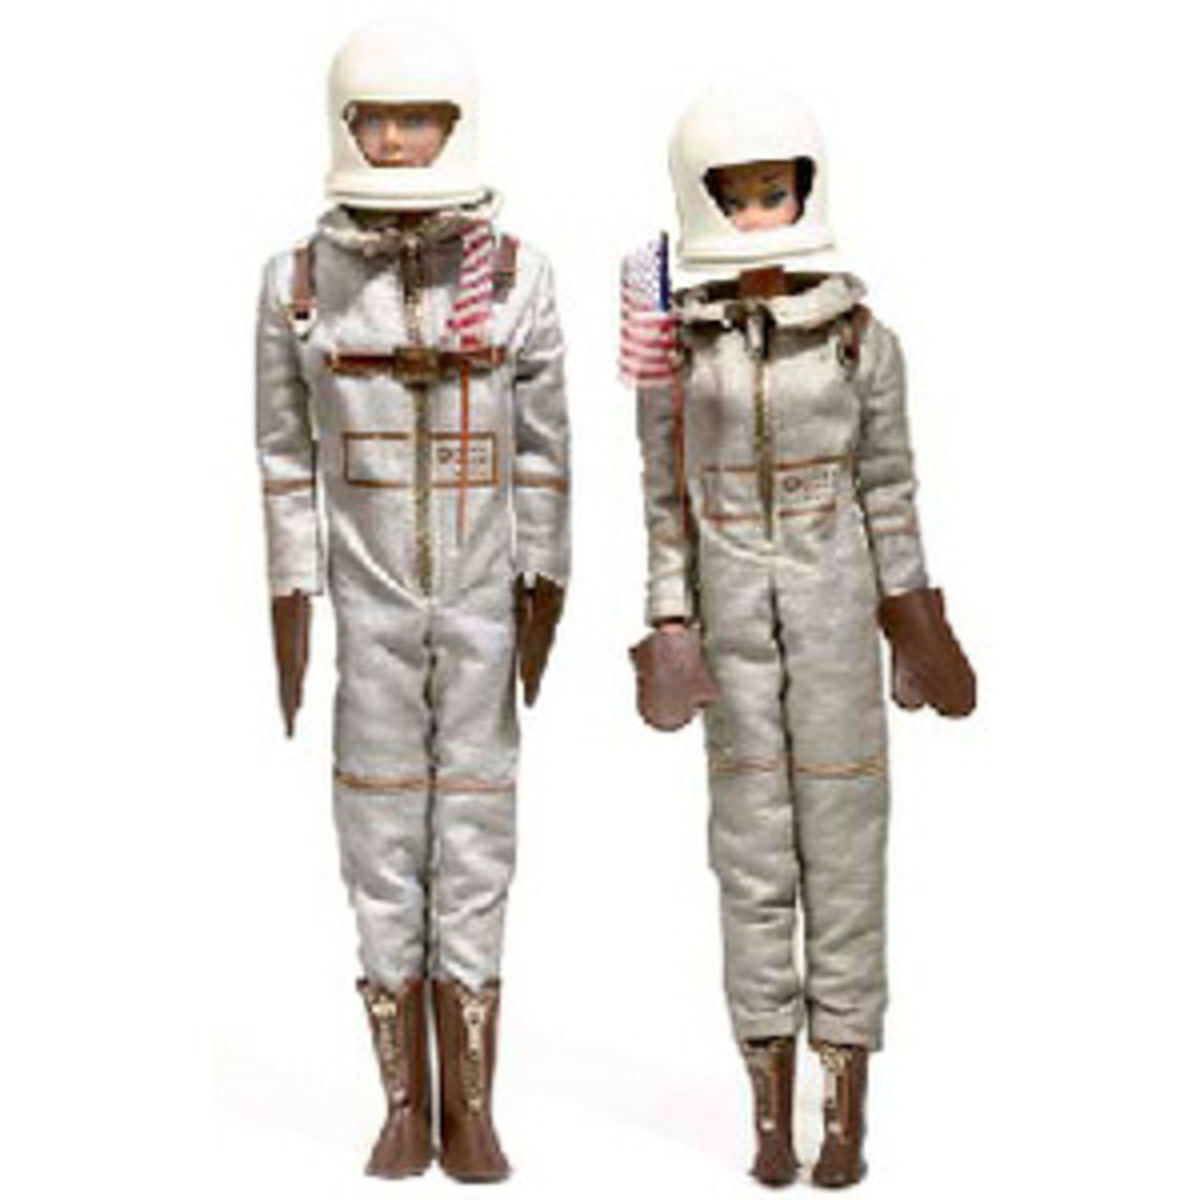 Barbie and Ken in Miss (and Mr.) Astronaut